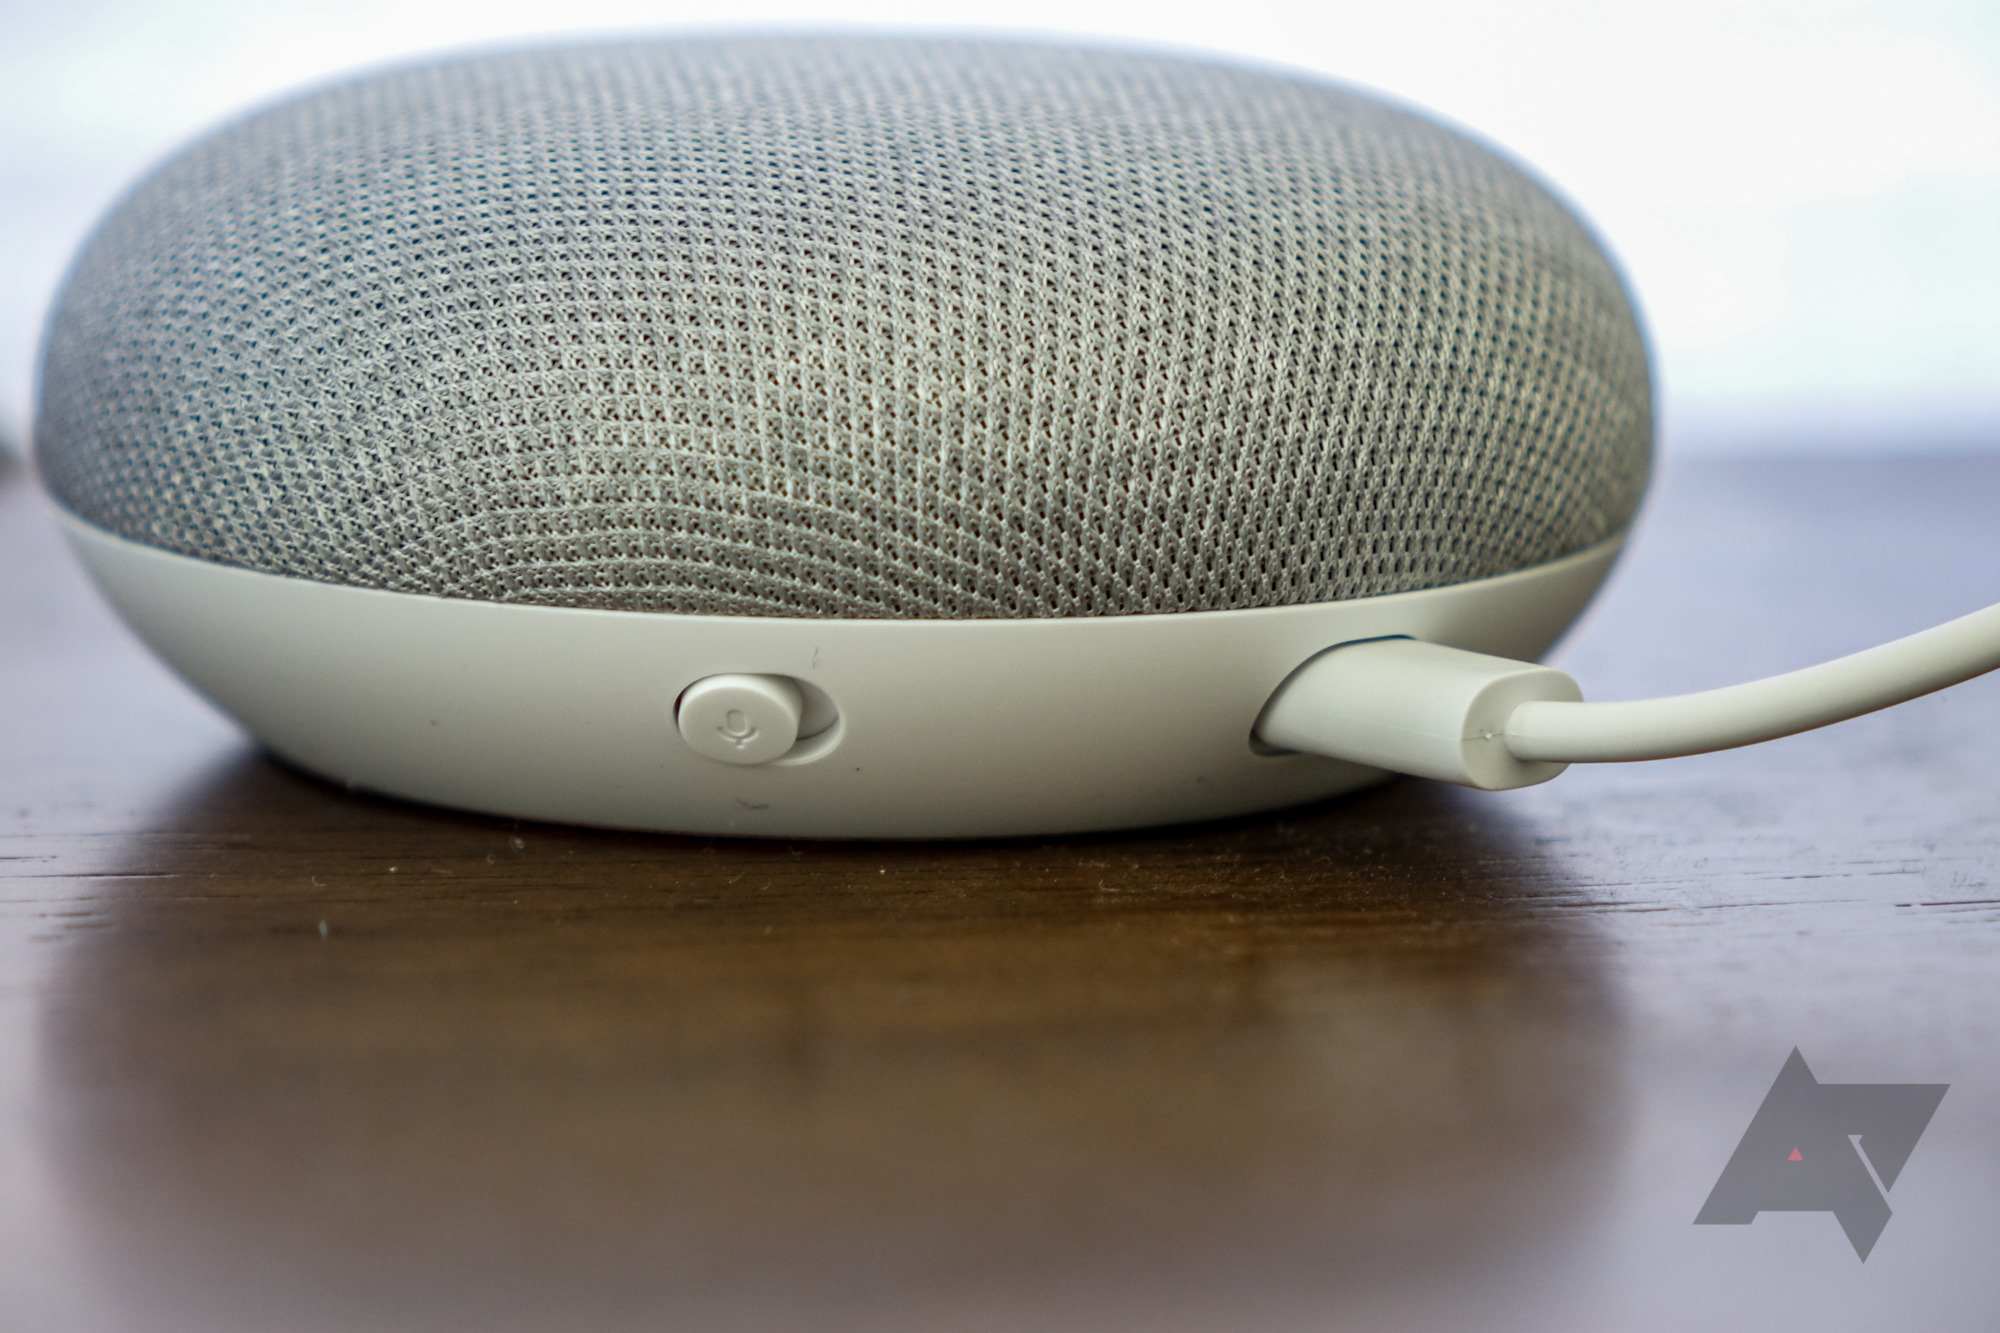 Google 'Nest Mini' 2nd-gen smart speaker leaks with major upgrades